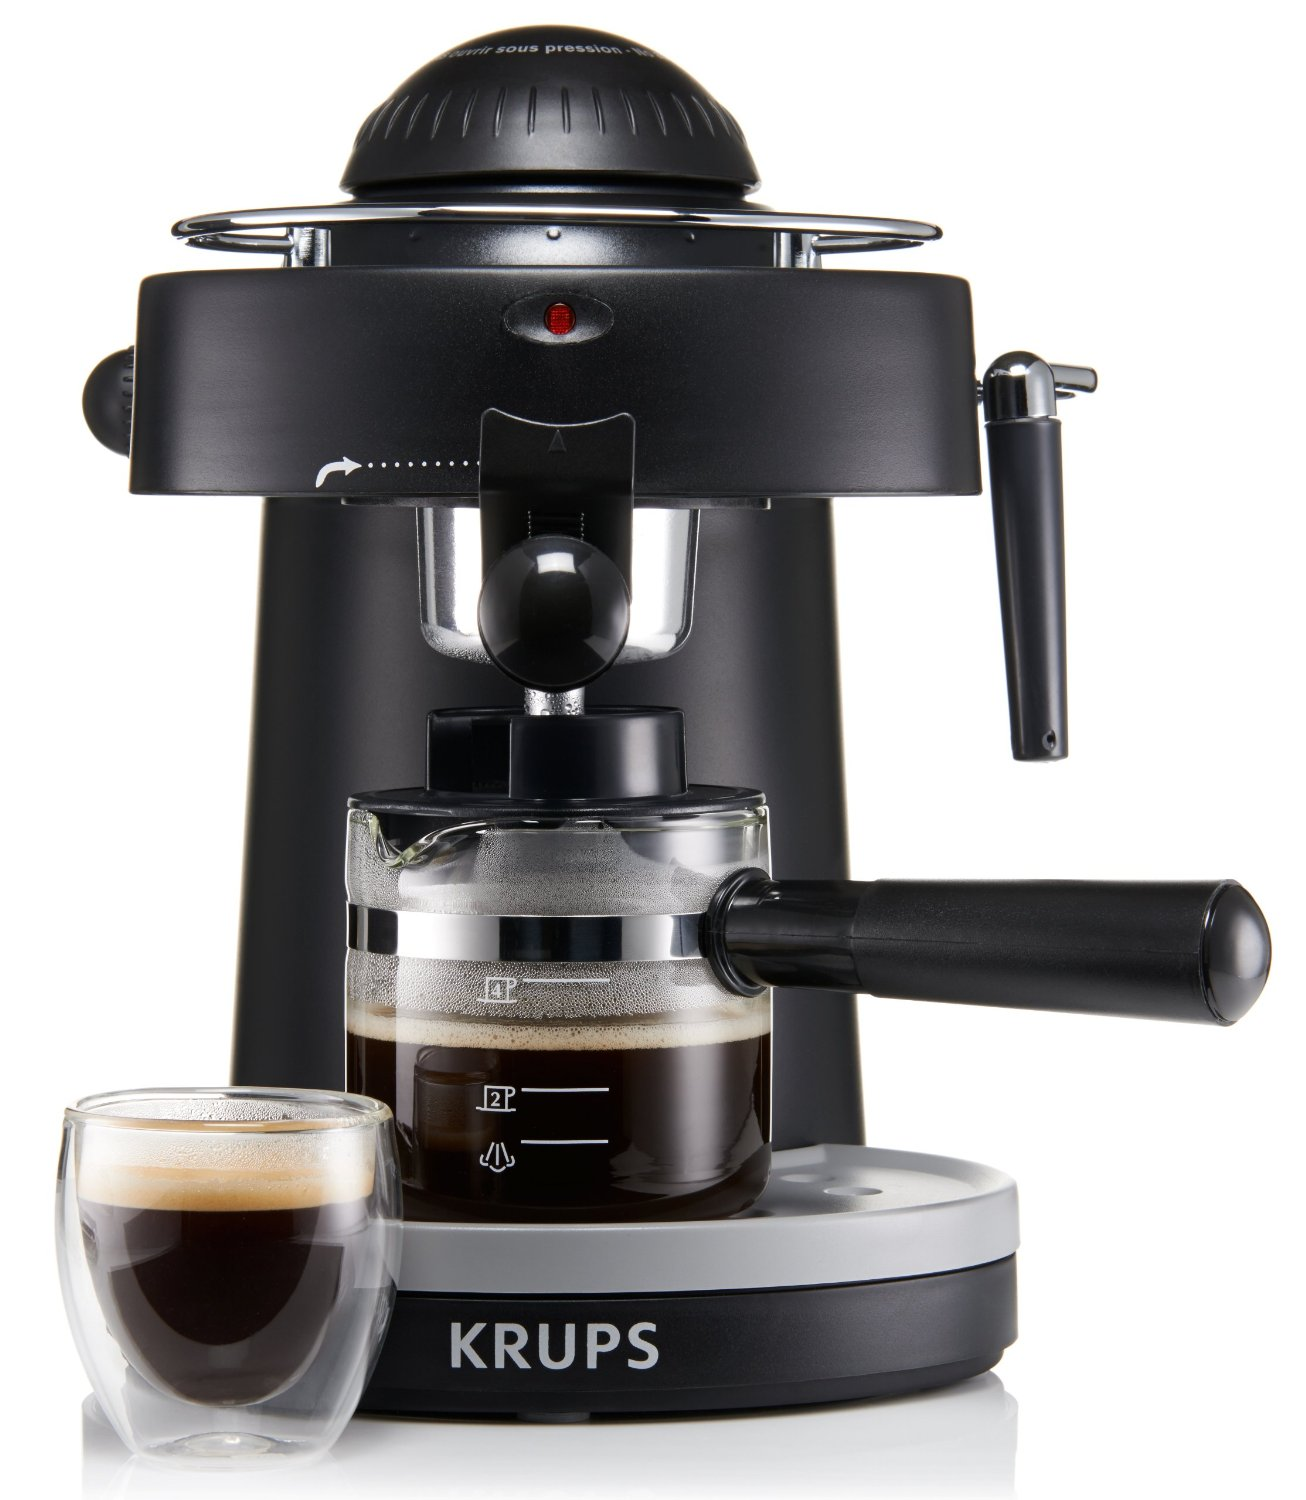 10 Best Home Espresso Machine Reviews — TOP Choice of 2020